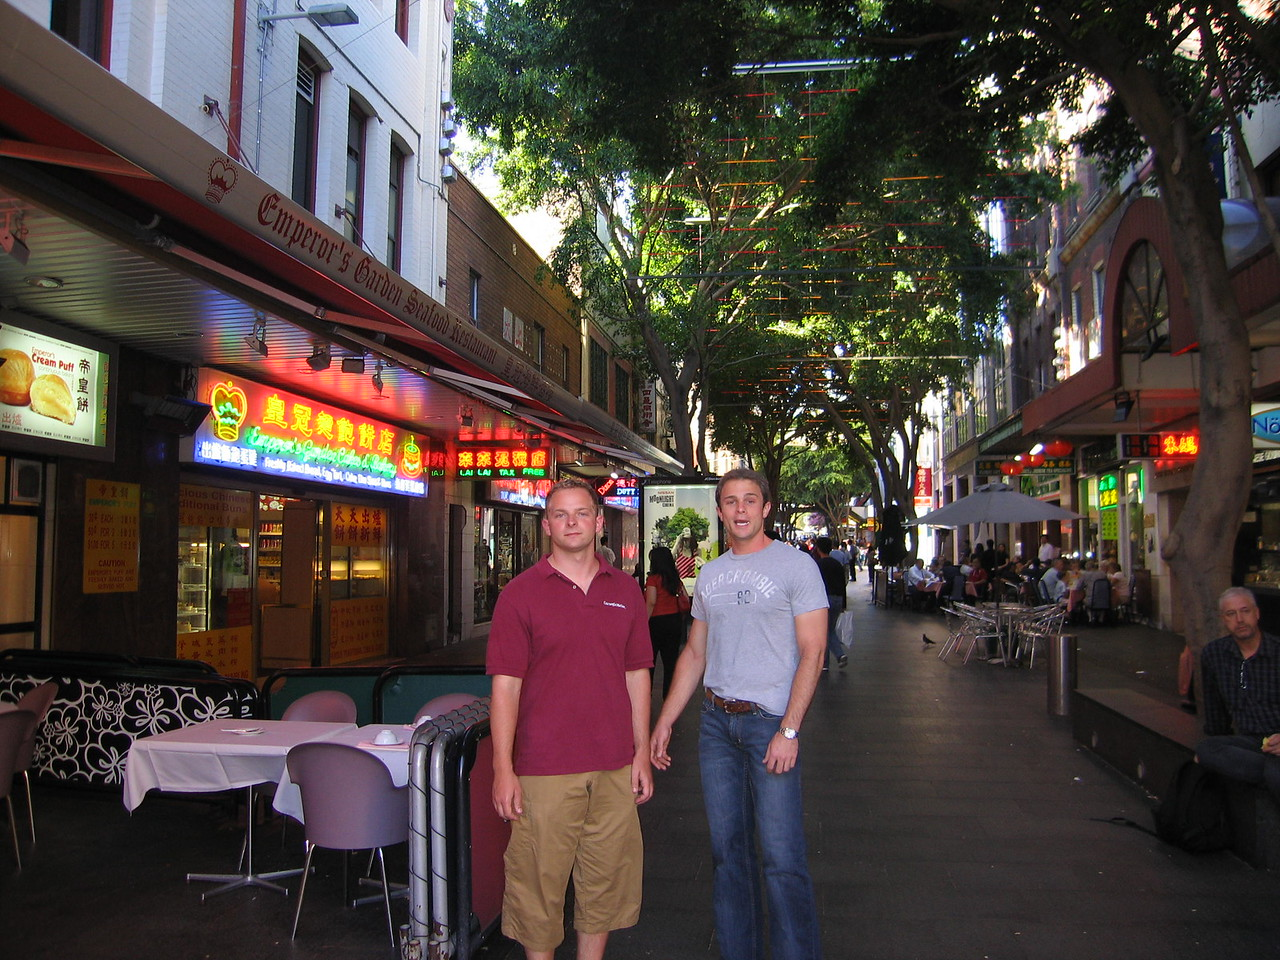 China Town - Rob and Steve